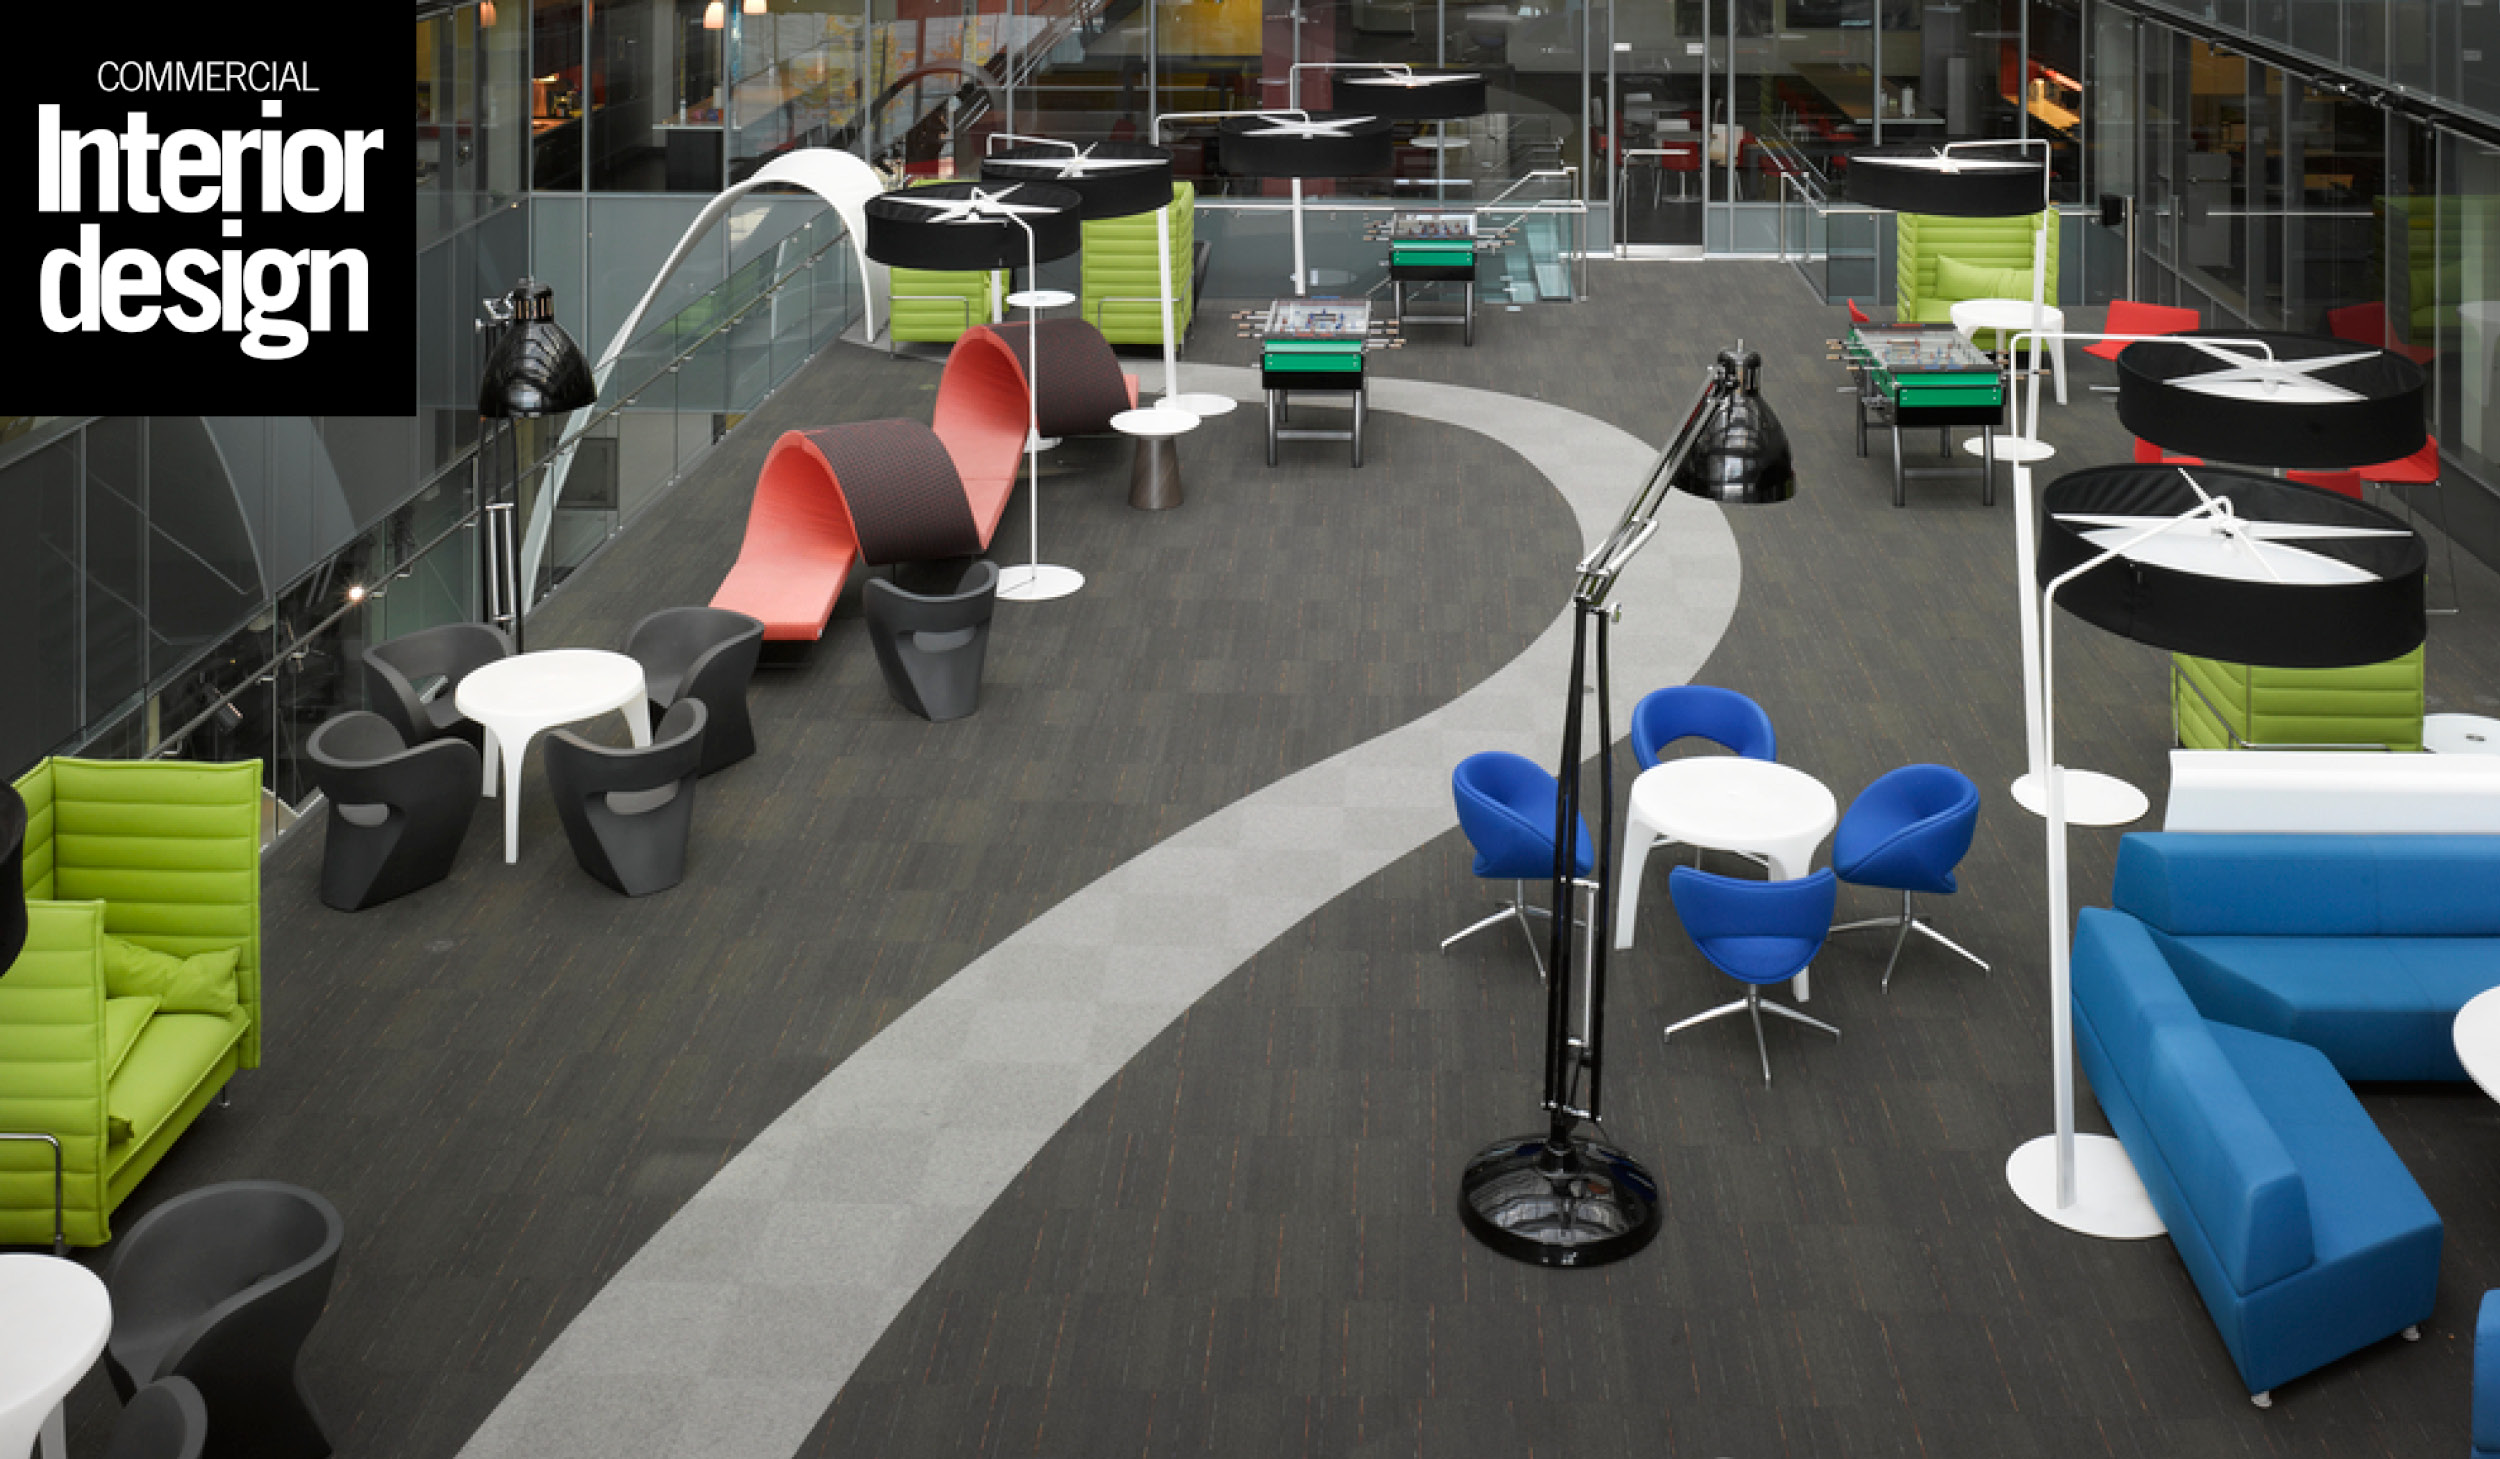 photo of colourful seating furniture in a lounge area at the Corus Entertainment headquarters with the Commercial Interior Design logo in the top left corner